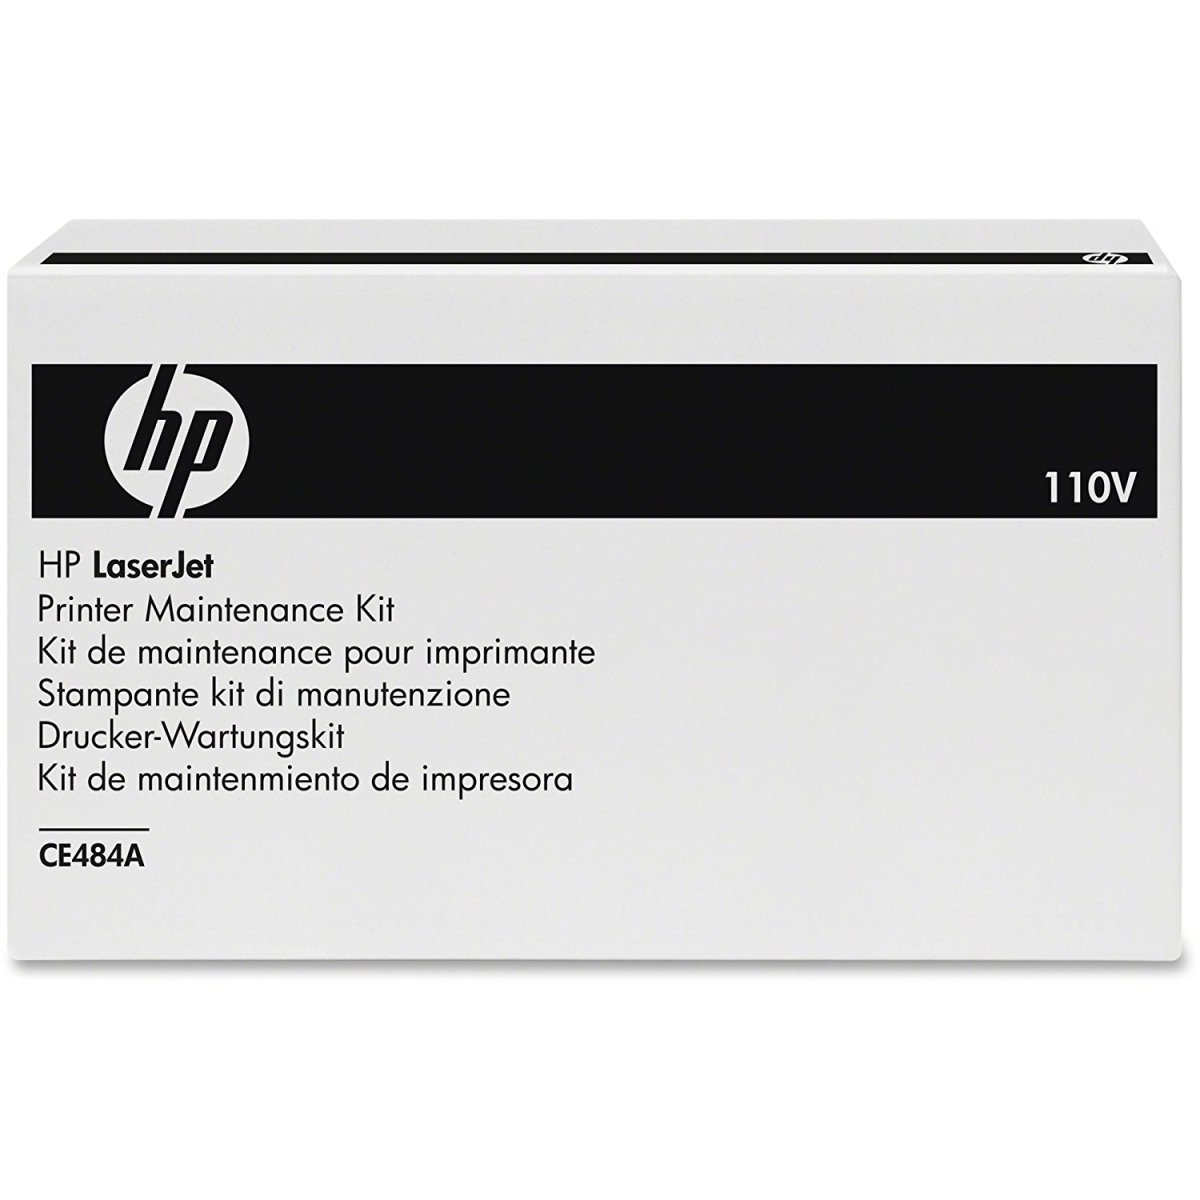 HP CE484A-REF Maintenance Kit with Aftermarket Parts for Color Laserjet CM3530 MFP